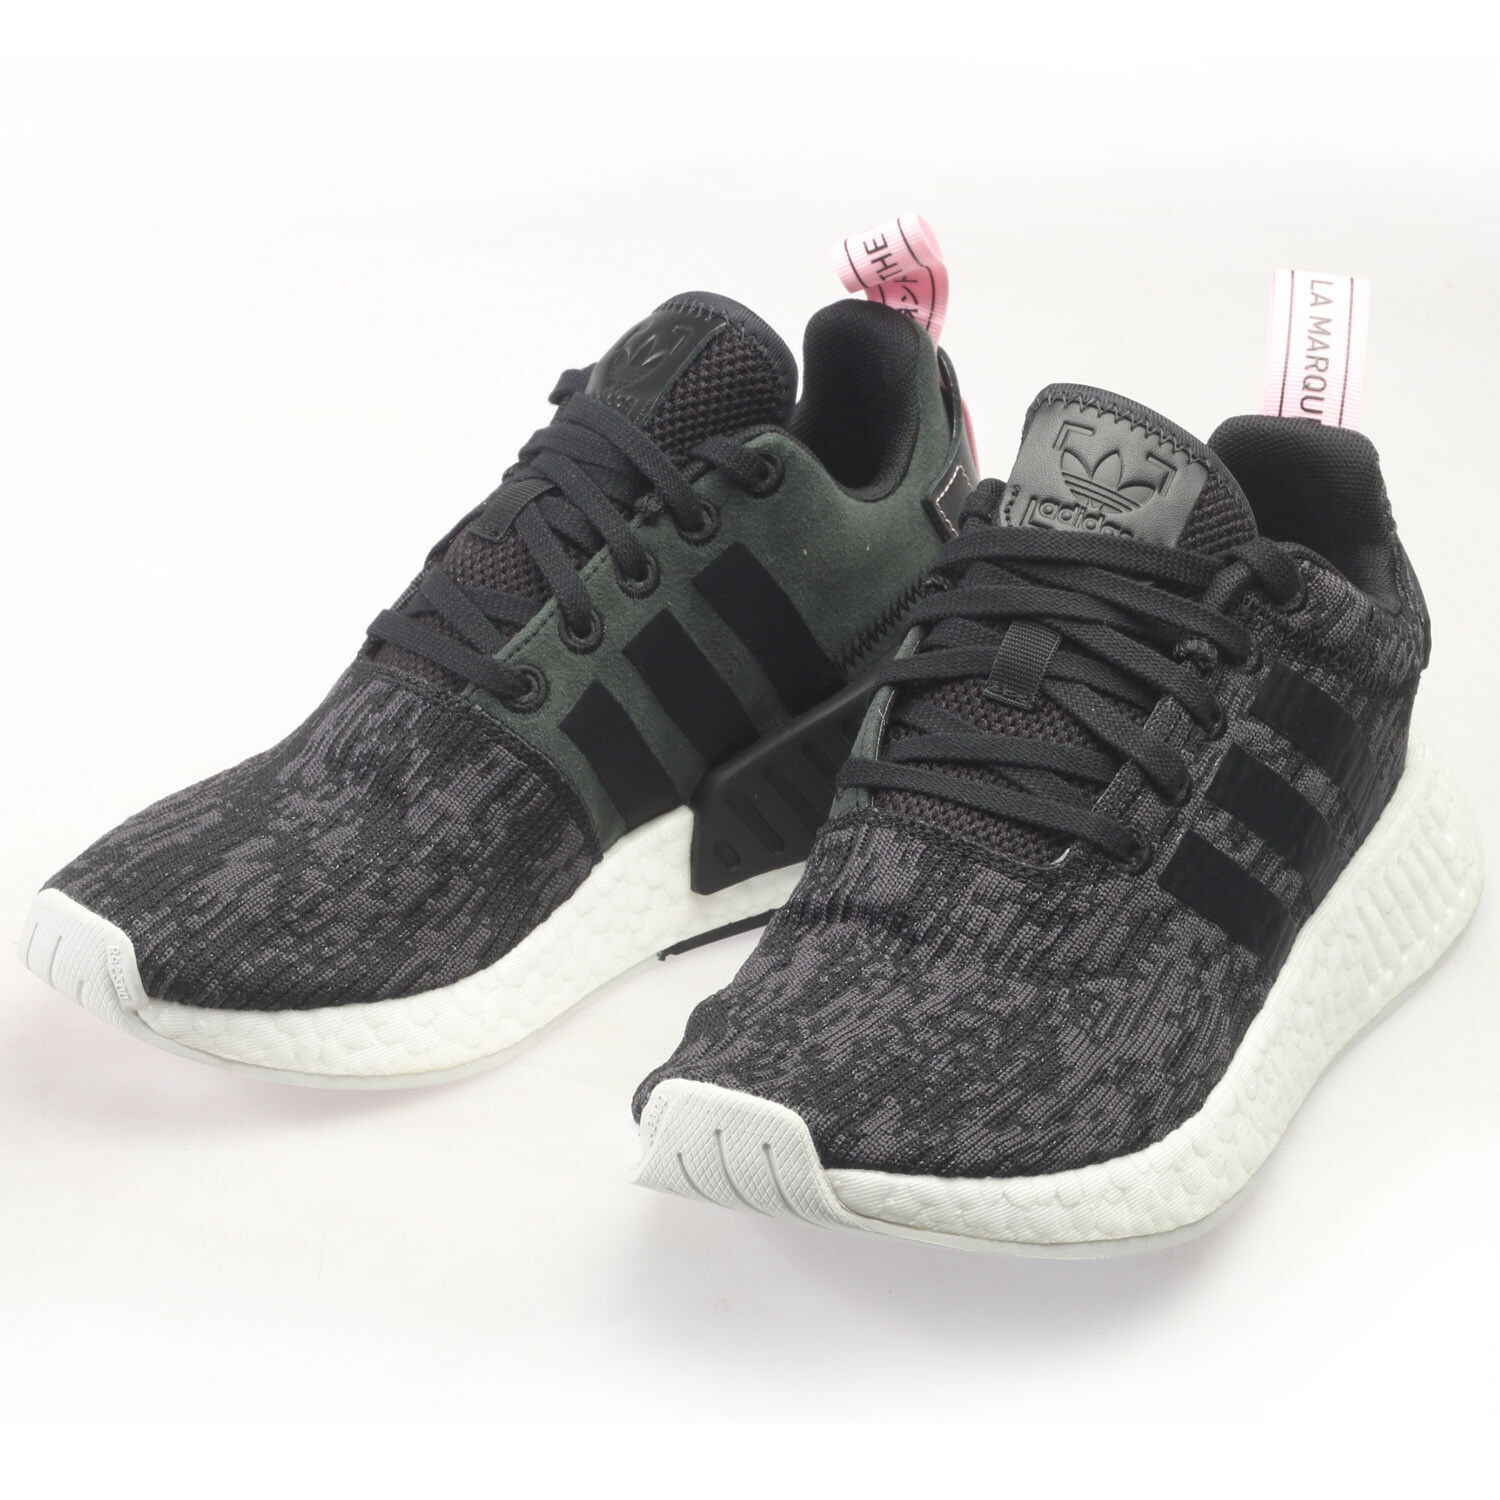 Adidas Originals NMD R2 Womens BY9314 Black Wonder Pink Running Shoes Comfortable The latest discount shoes for men and women